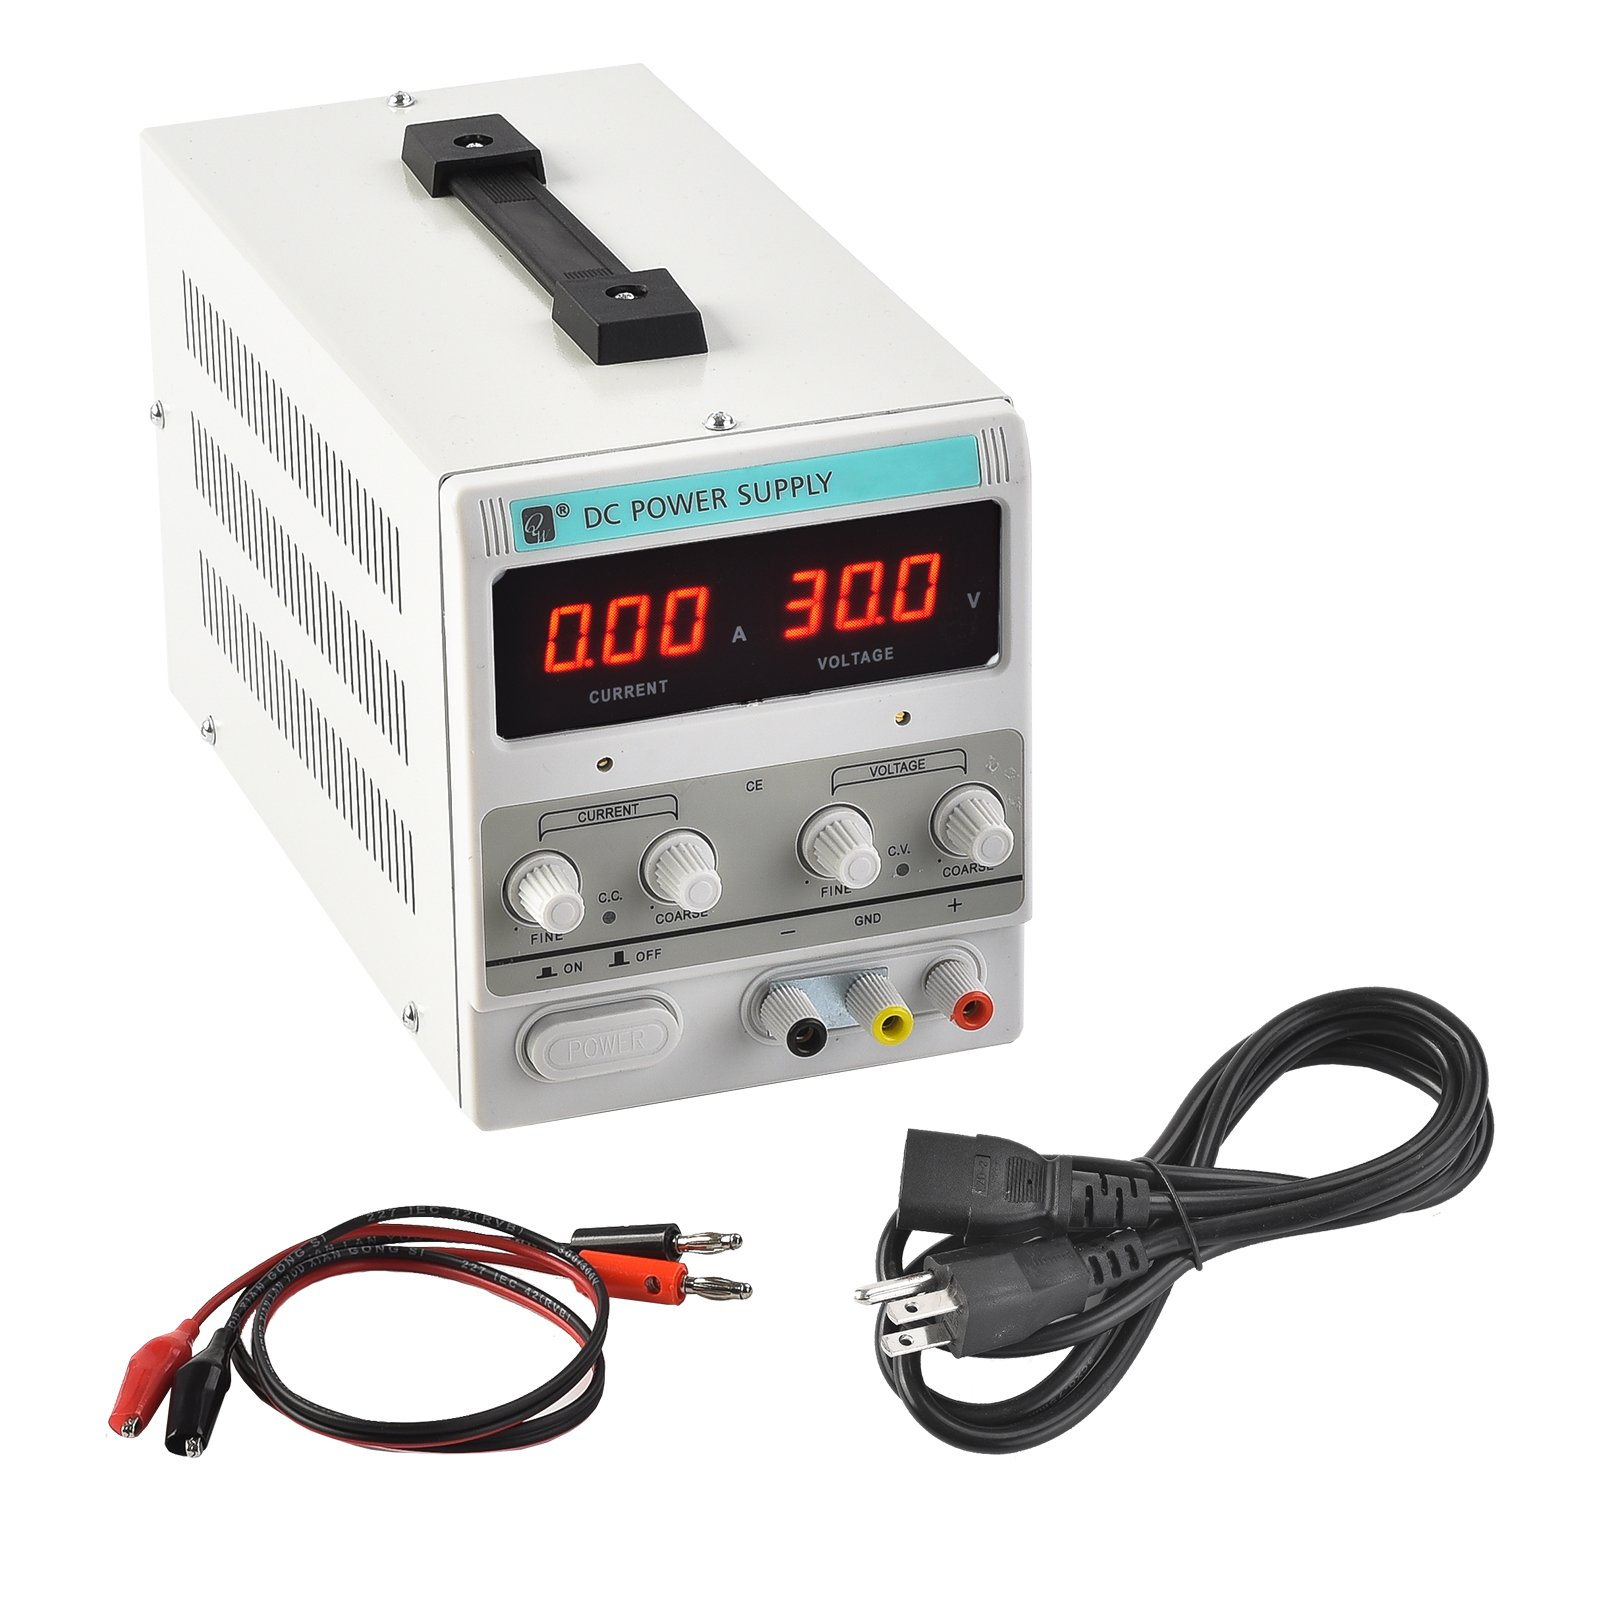 SUNCOO DC Power Supply 10A /30V Precision Variable Digital Adjustable Bench Dual LED Display US Standard w/Cable